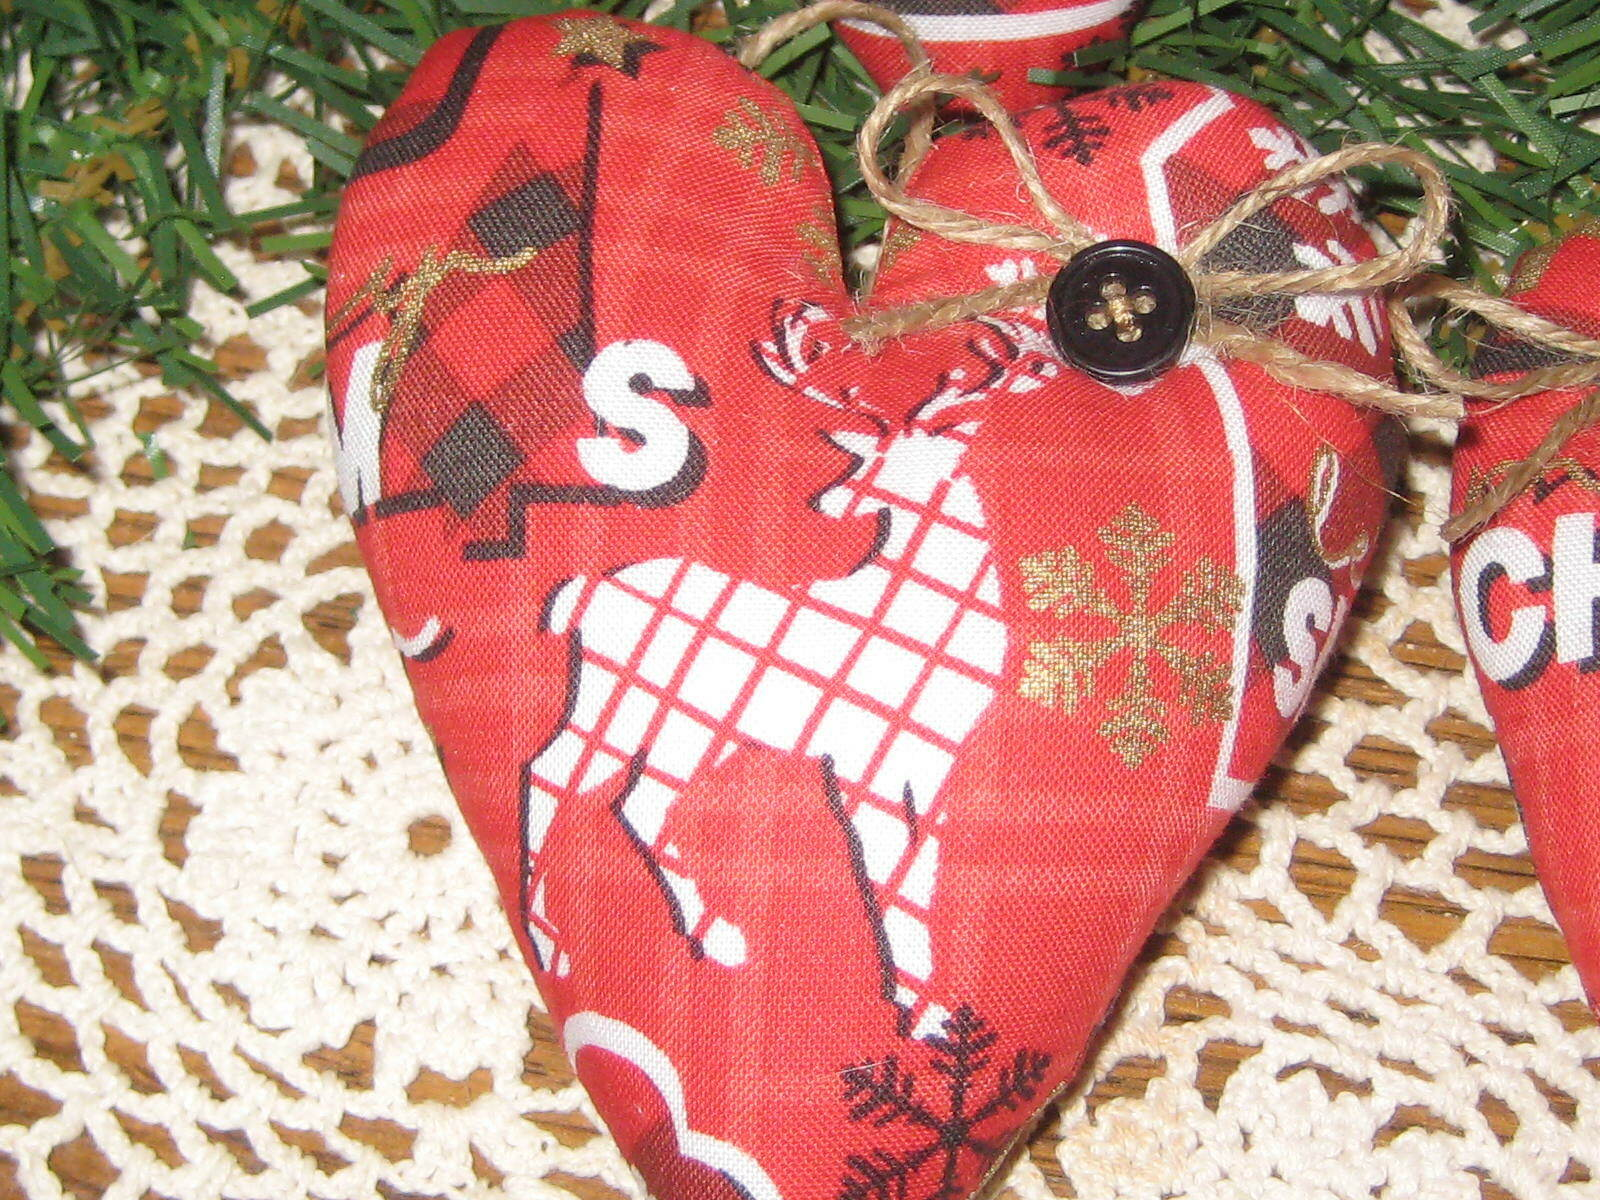 Country Christmas Decor 6 Red Hearts Reindeer Fabric Handmade Tree Ornaments - $21.95